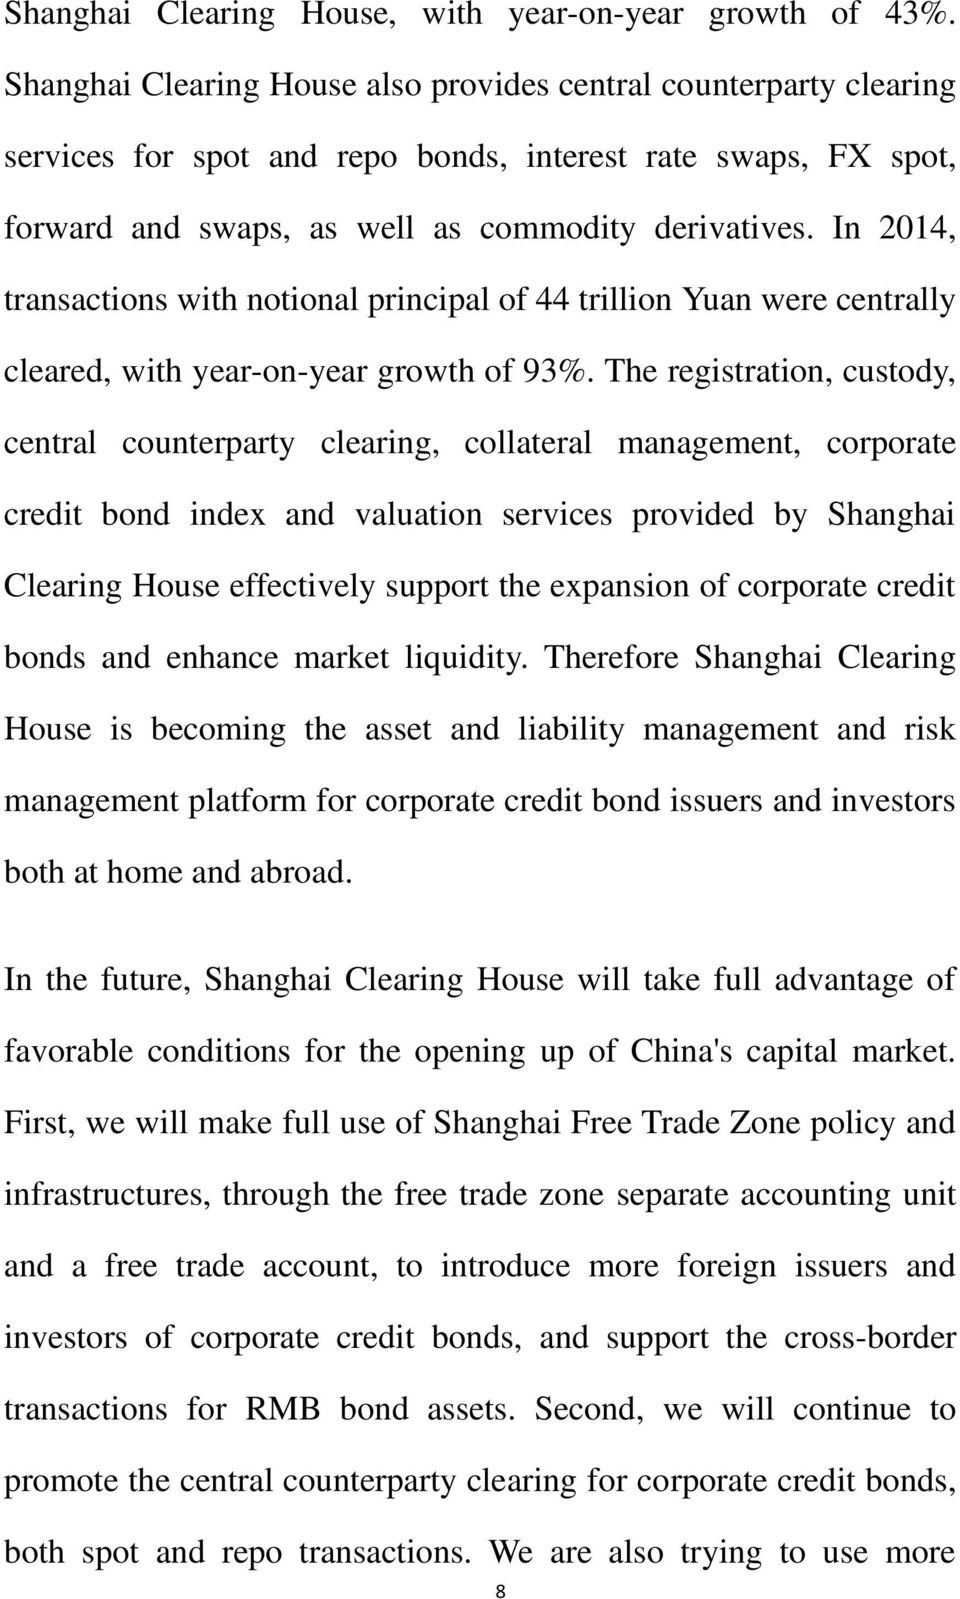 In 2014, transactions with notional principal of 44 trillion Yuan were centrally cleared, with year-on-year growth of 93%.